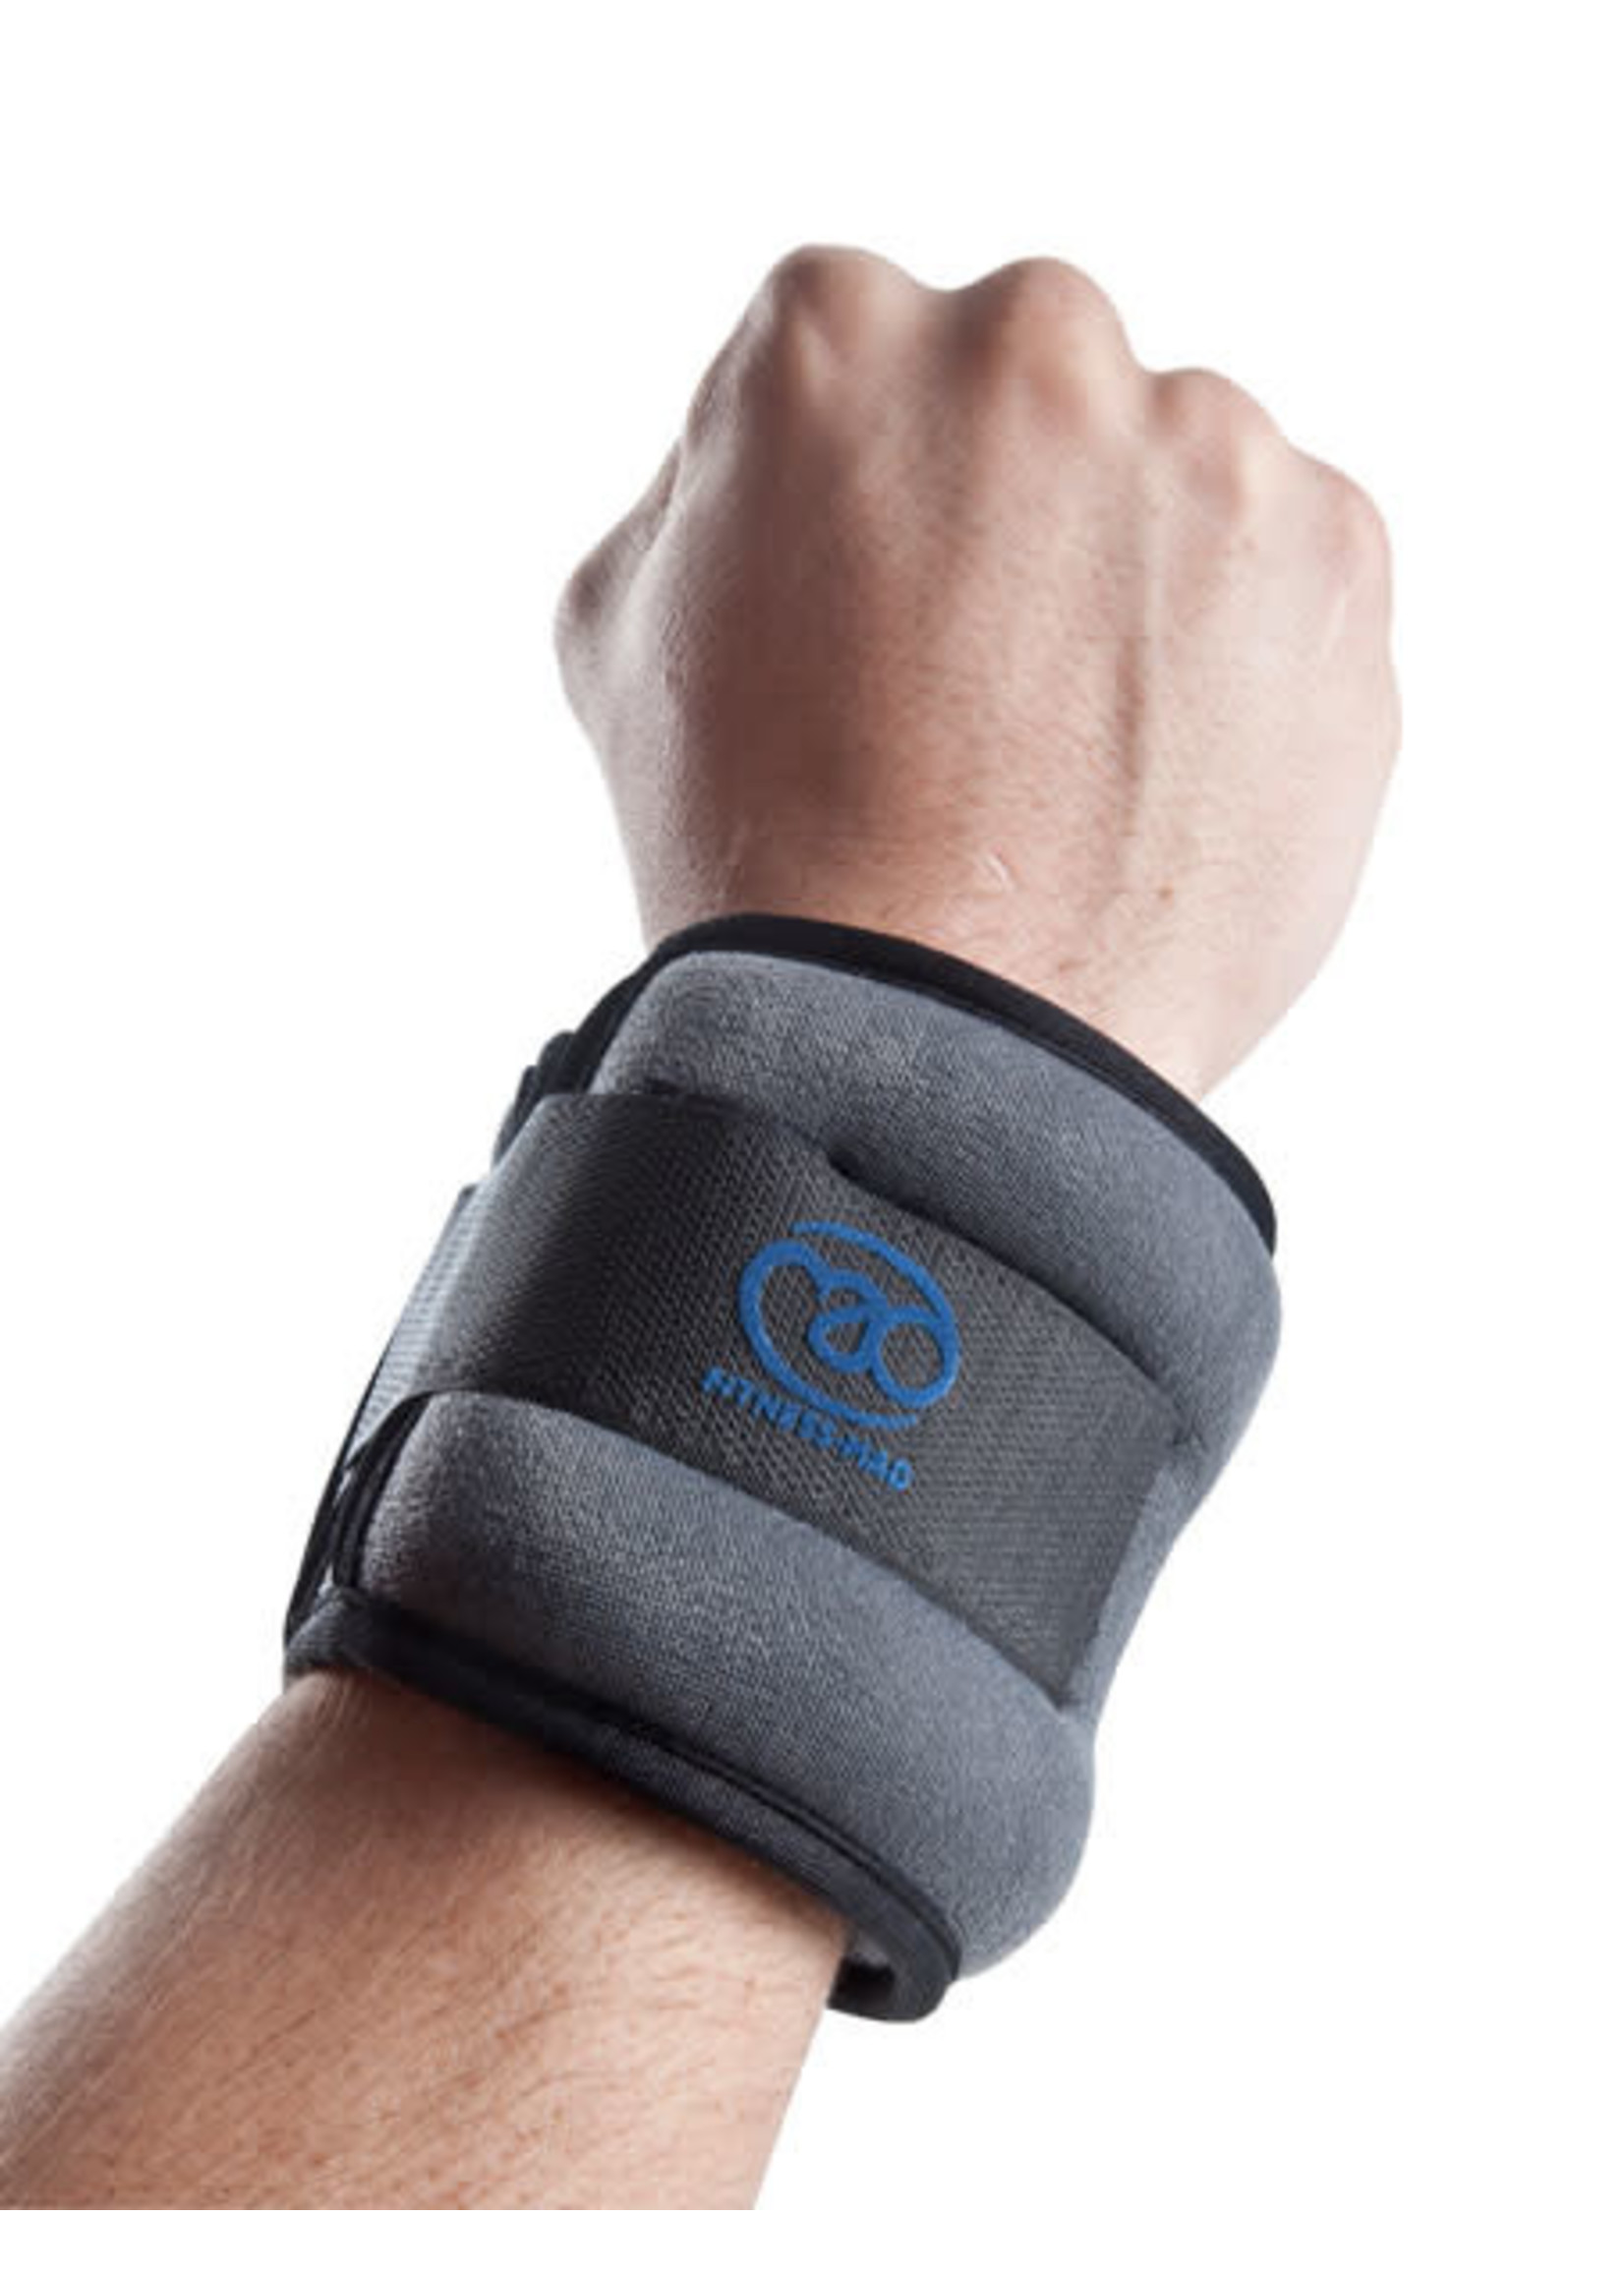 Fitness Mad Fitness Mad Wrist and Ankle Weights 0.5kg